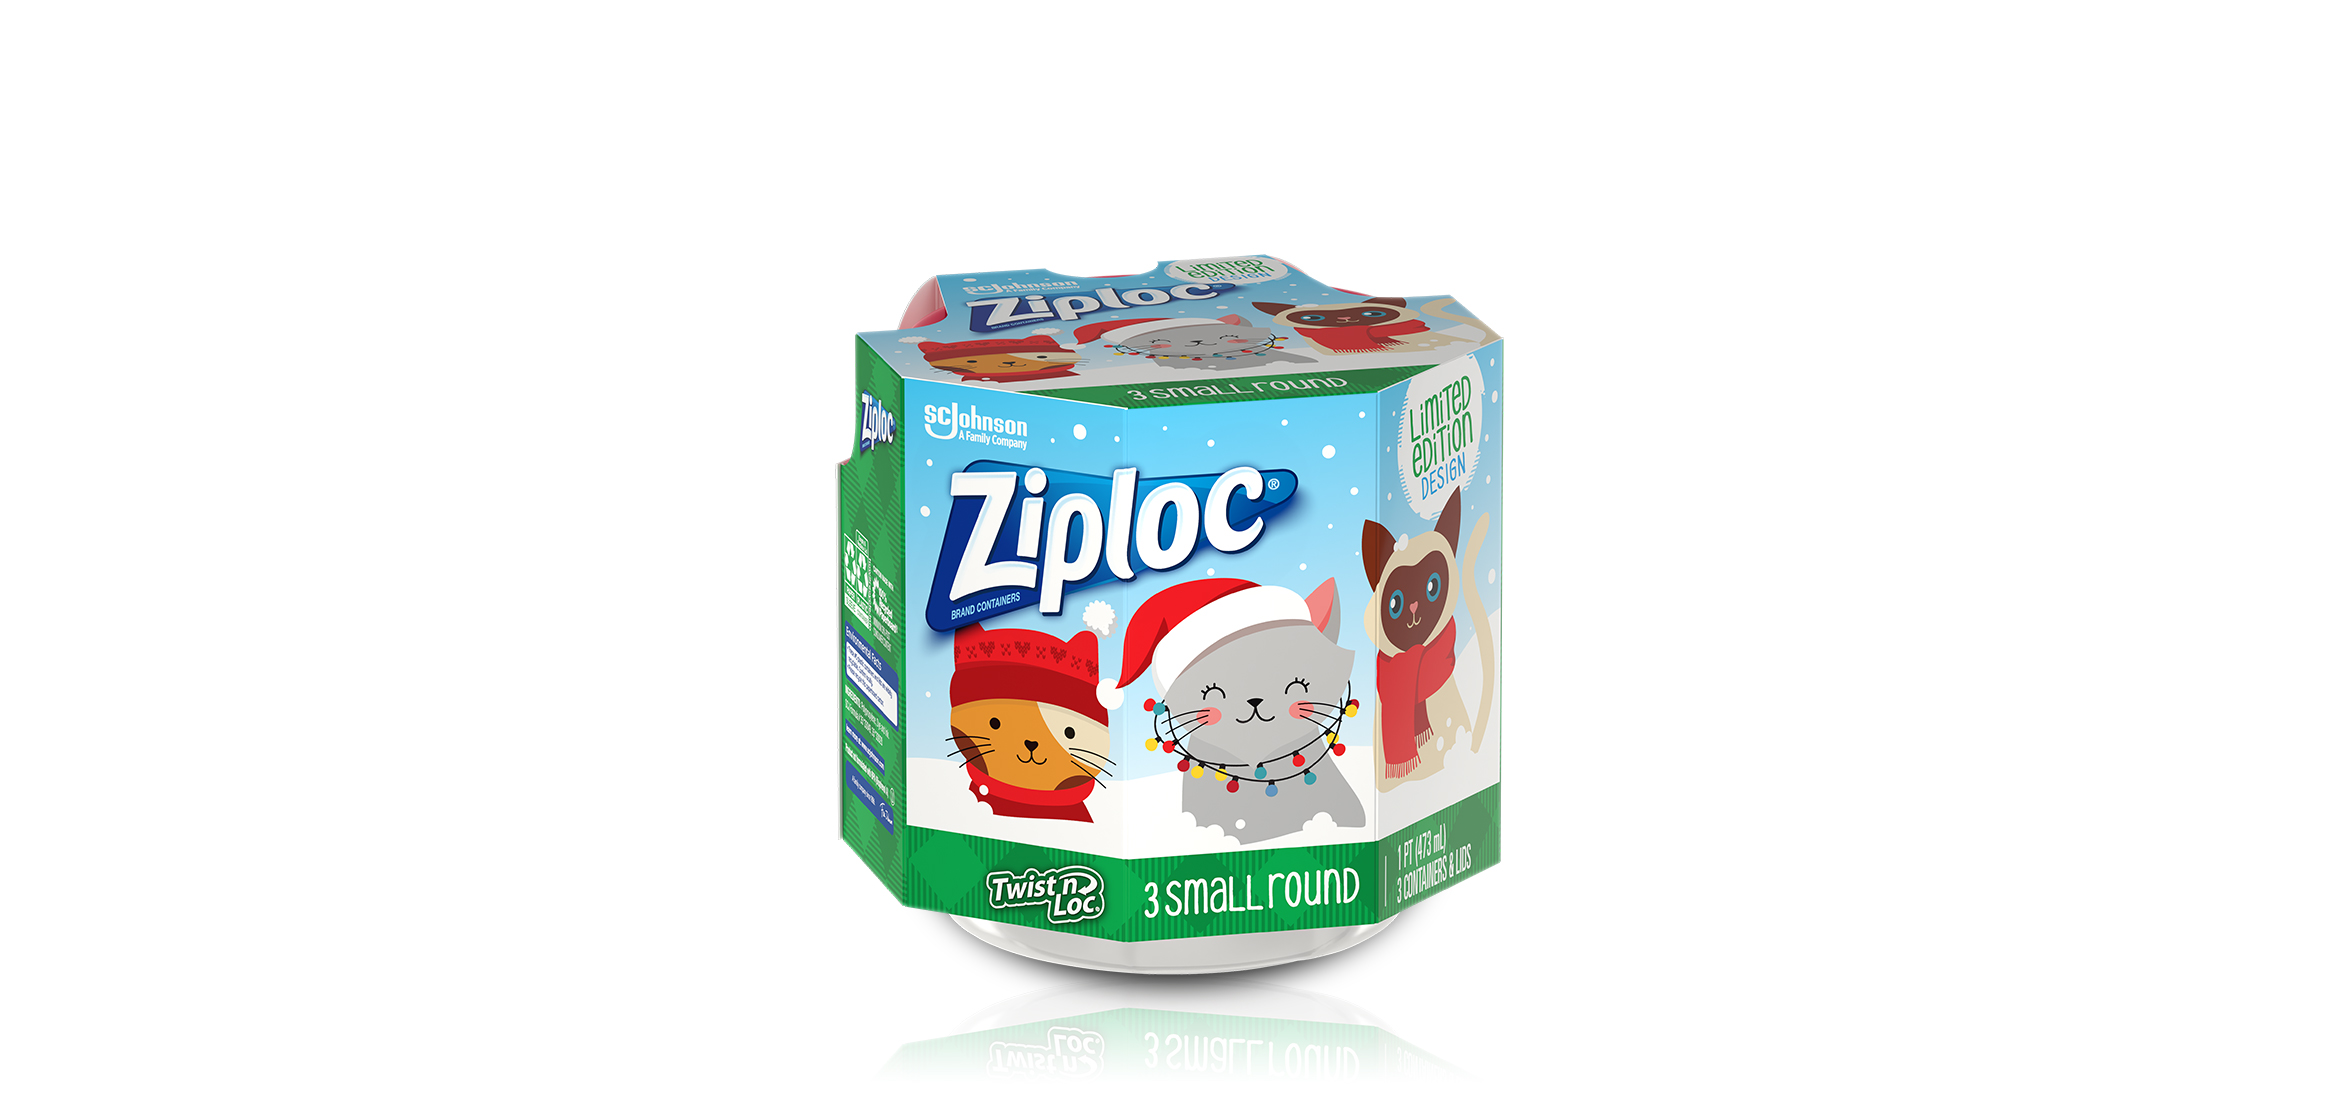 Ziploc_US_3SmallRound_Angle_Hero_2x